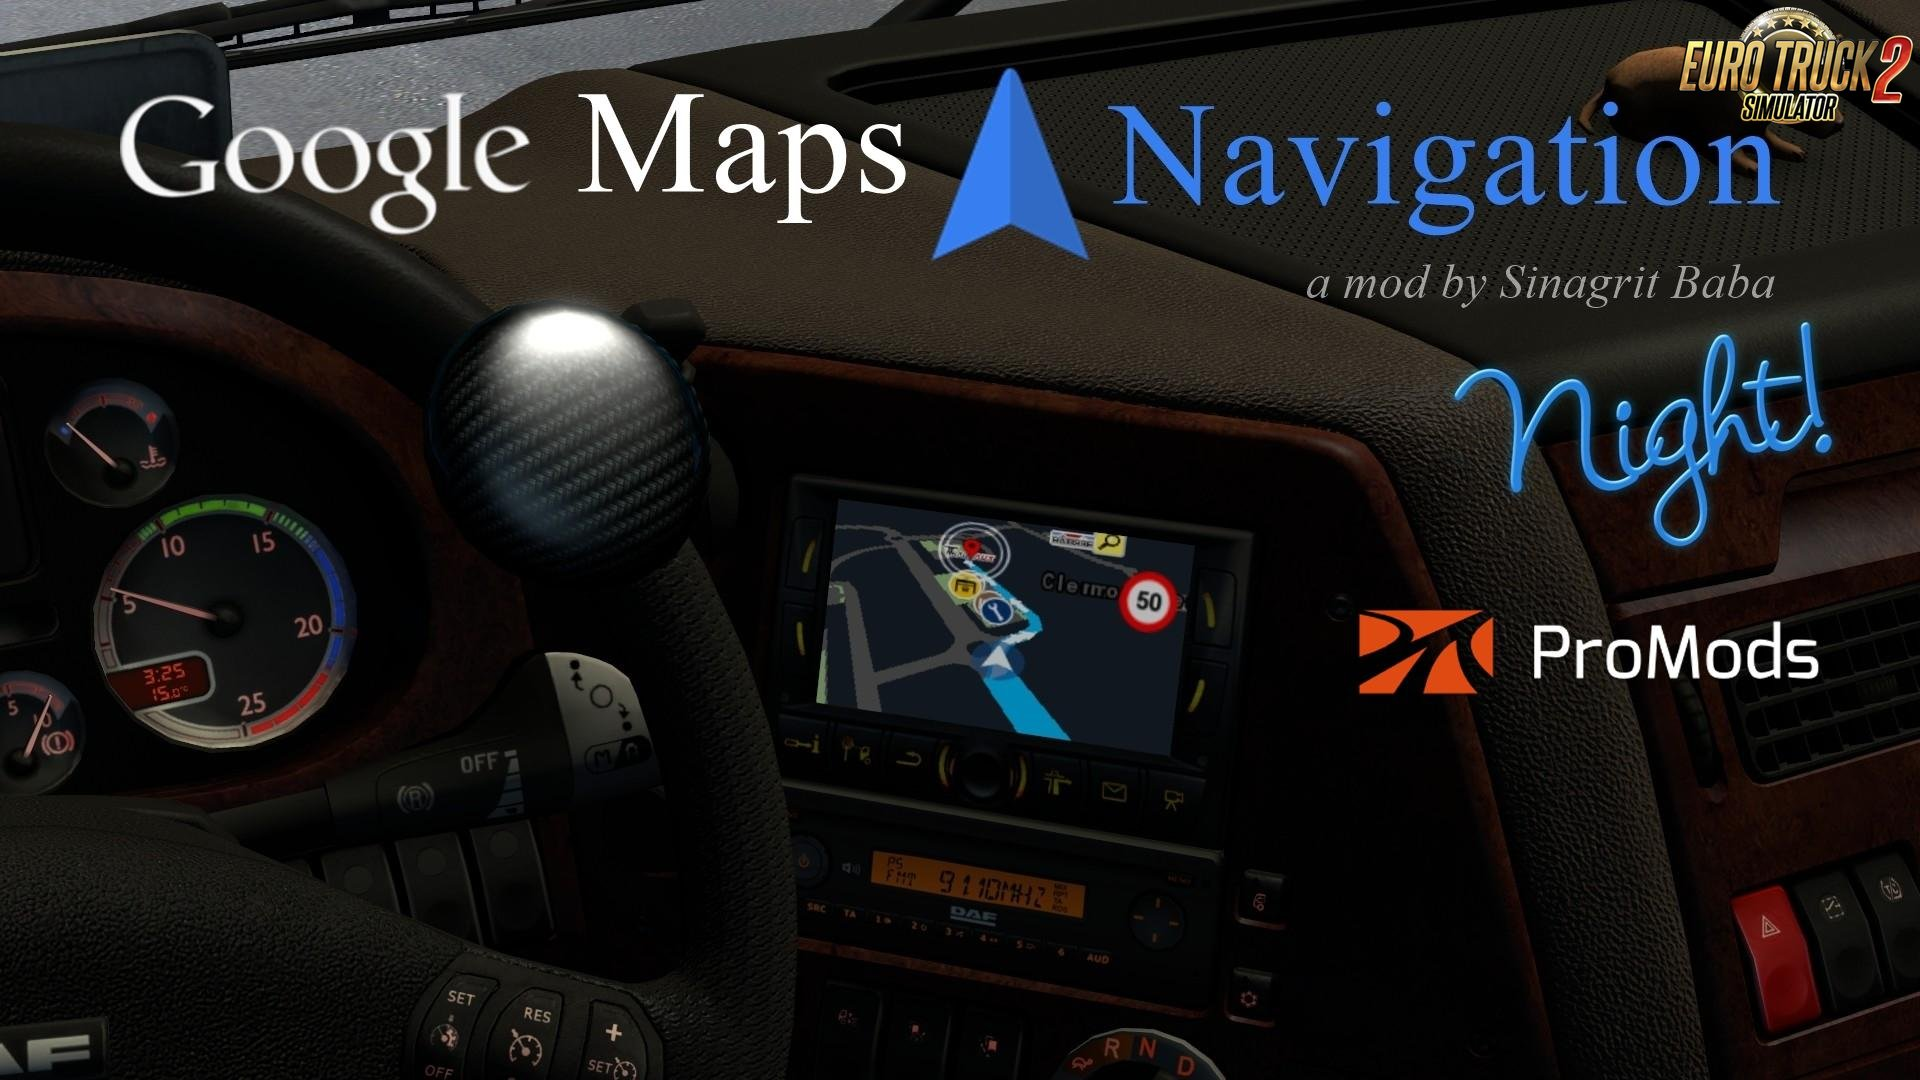 Google Maps Navigation Night Version v1.5 for ProMods 2.30